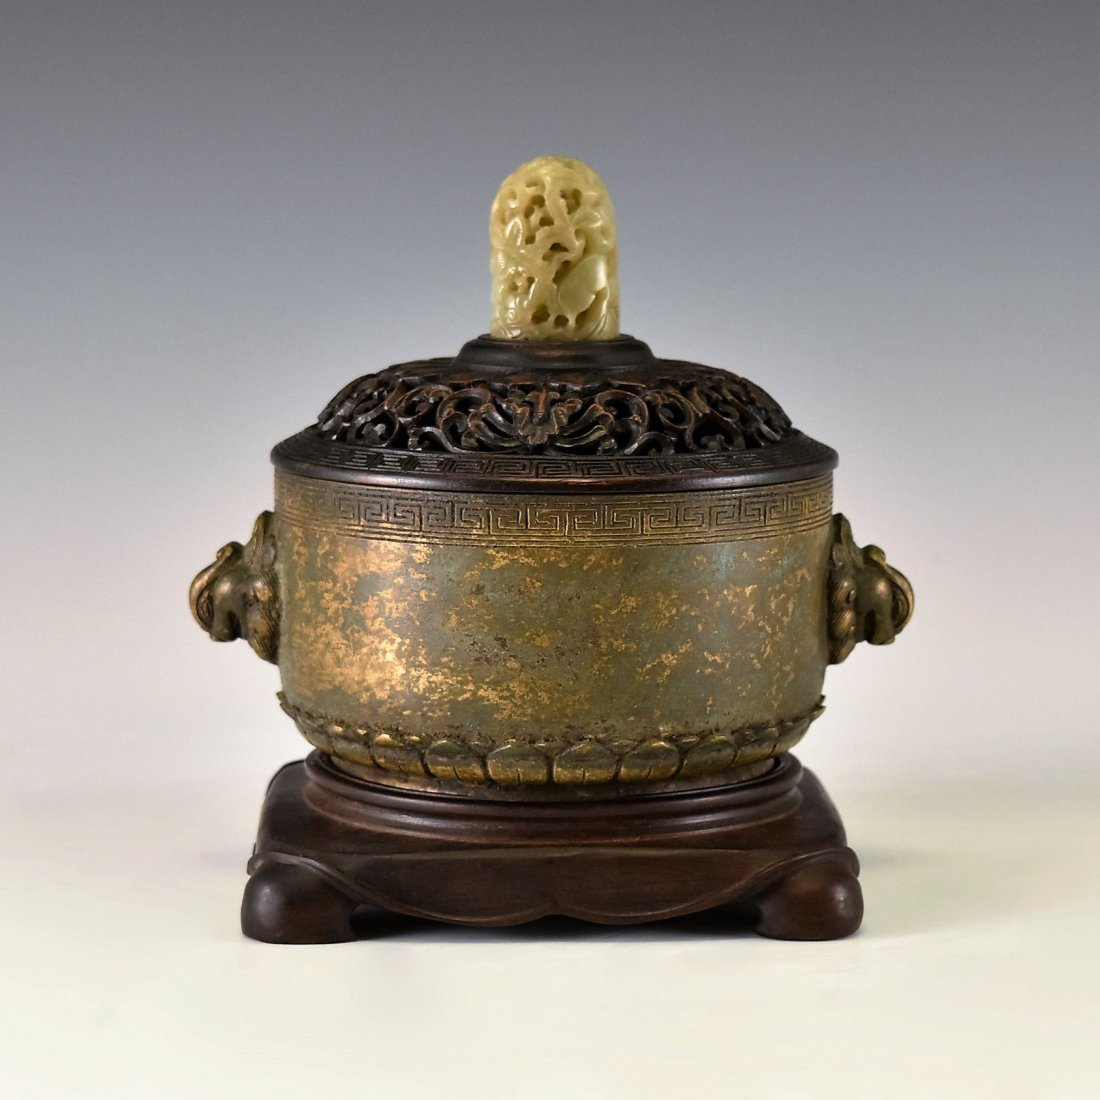 WOODEN COVERED BRONZE CENSER WITH JADE FINIAL ON STAND